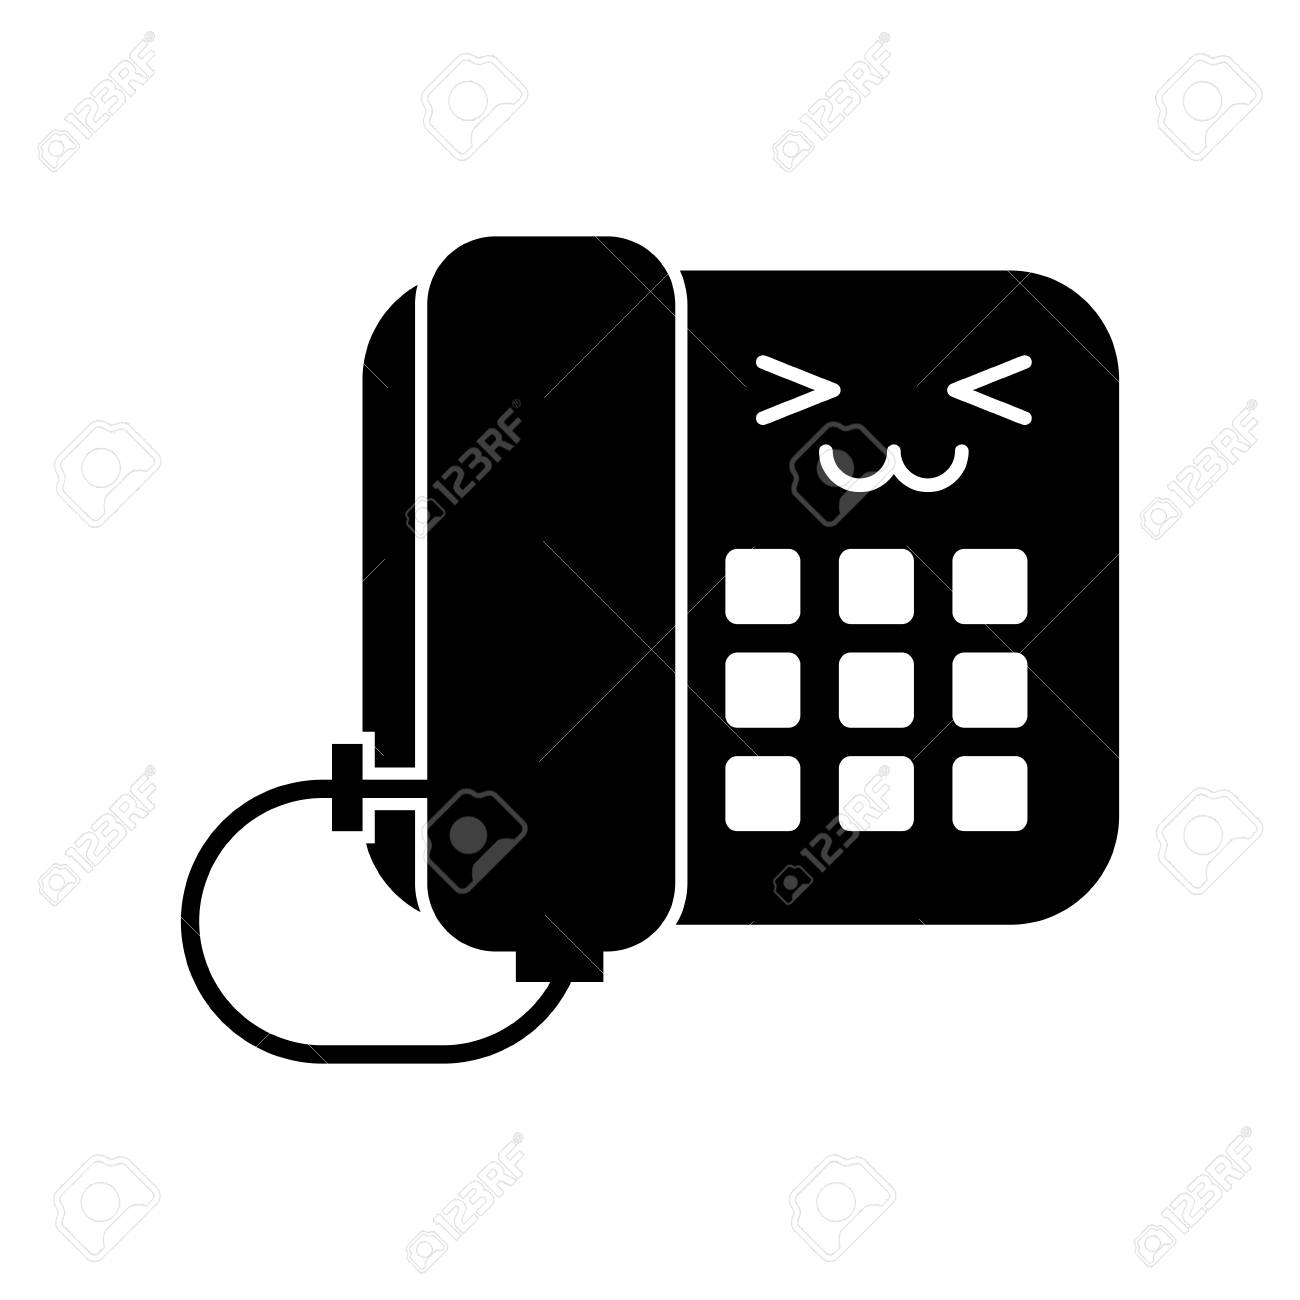 Office Telephone Character Vector Illustration Design Royalty Free